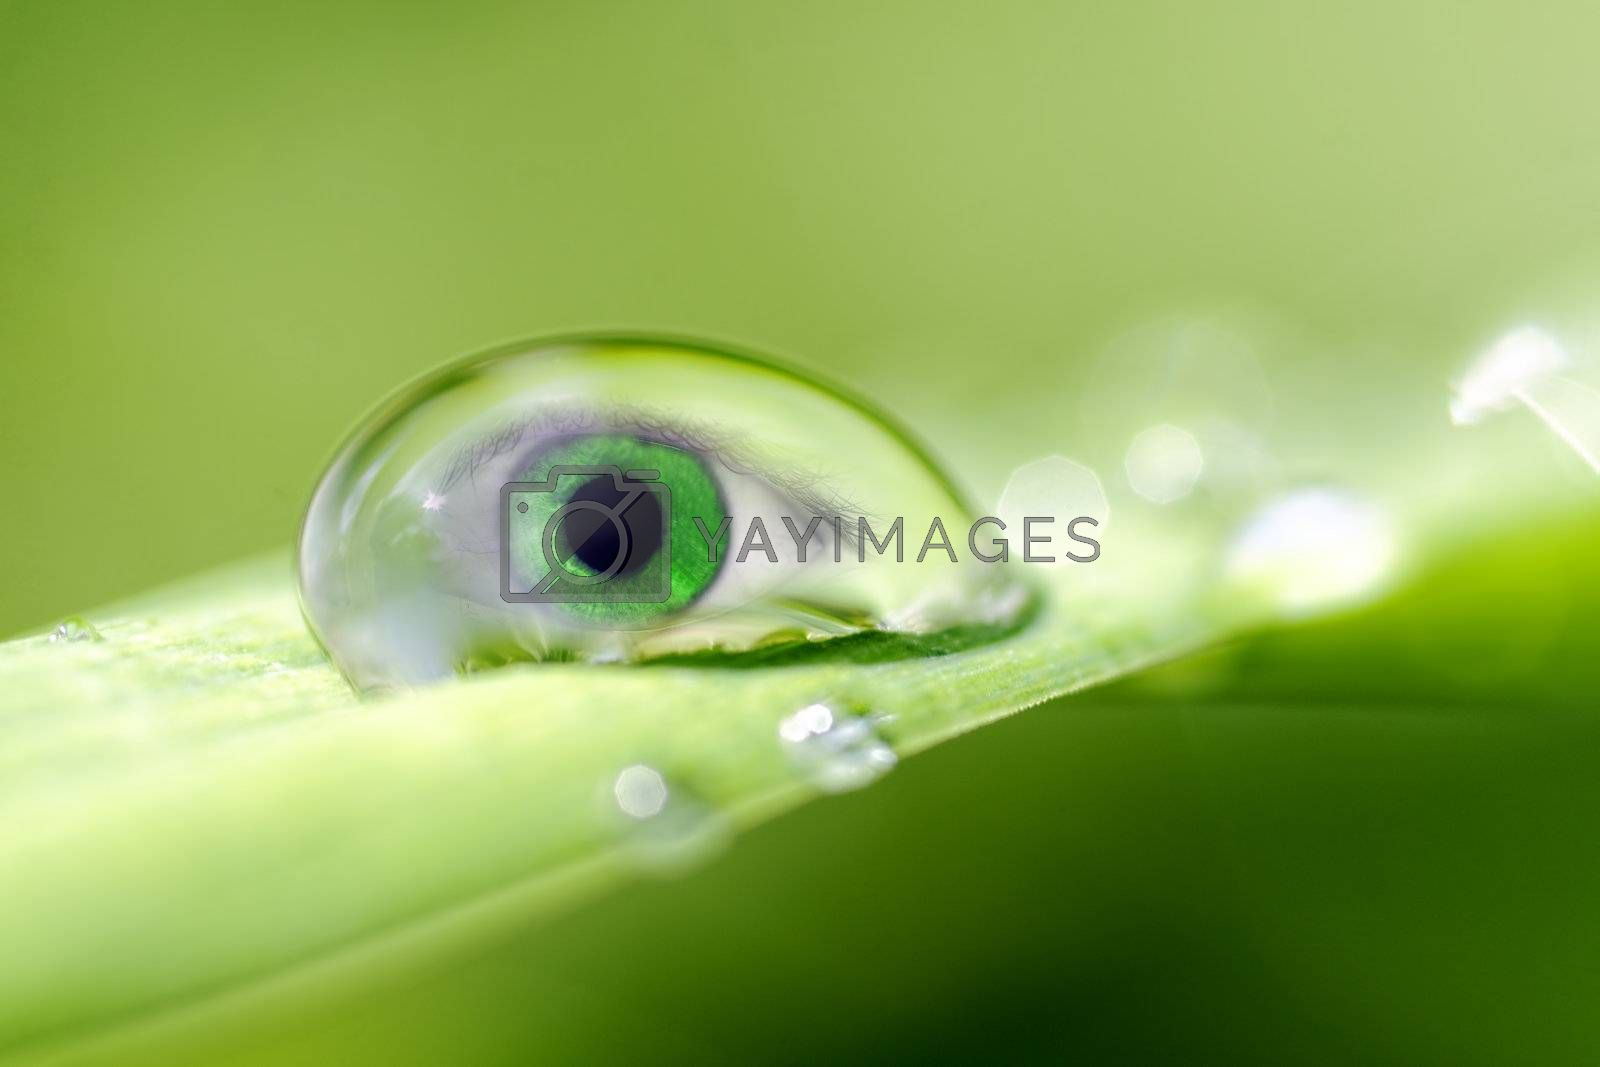 an eye inside a drop of dew